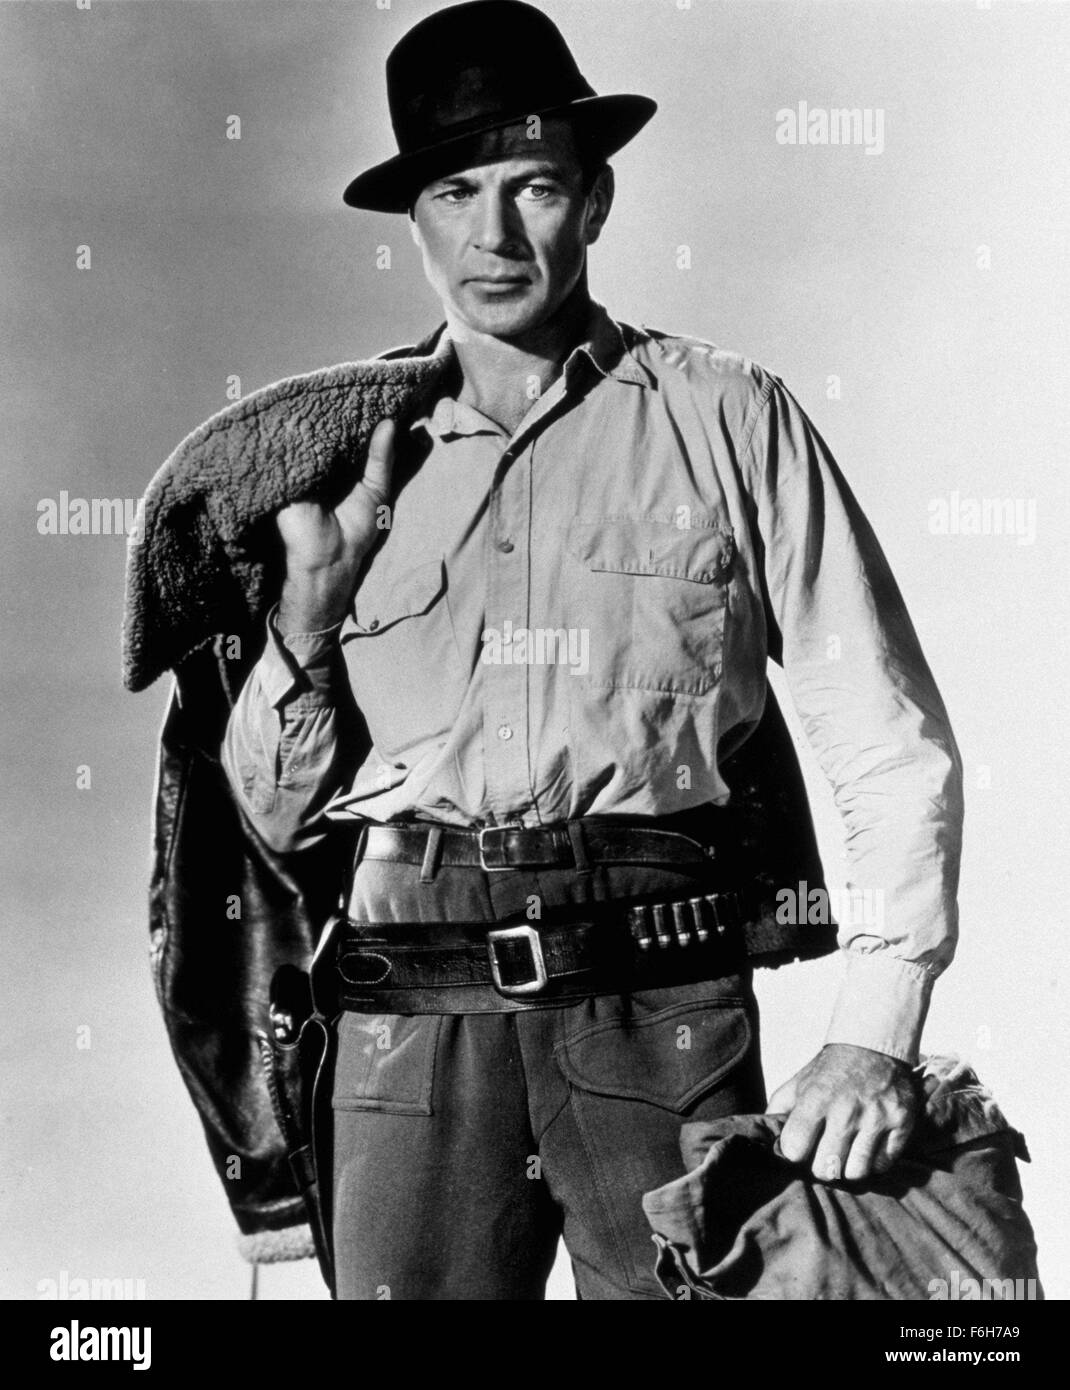 1943, Film Title: FOR WHOM THE BELL TOLLS, Director: SAM WOOD, Studio: PARAMOUNT, Pictured: GARY COOPER, HAT, MEN'S. - Stock Image